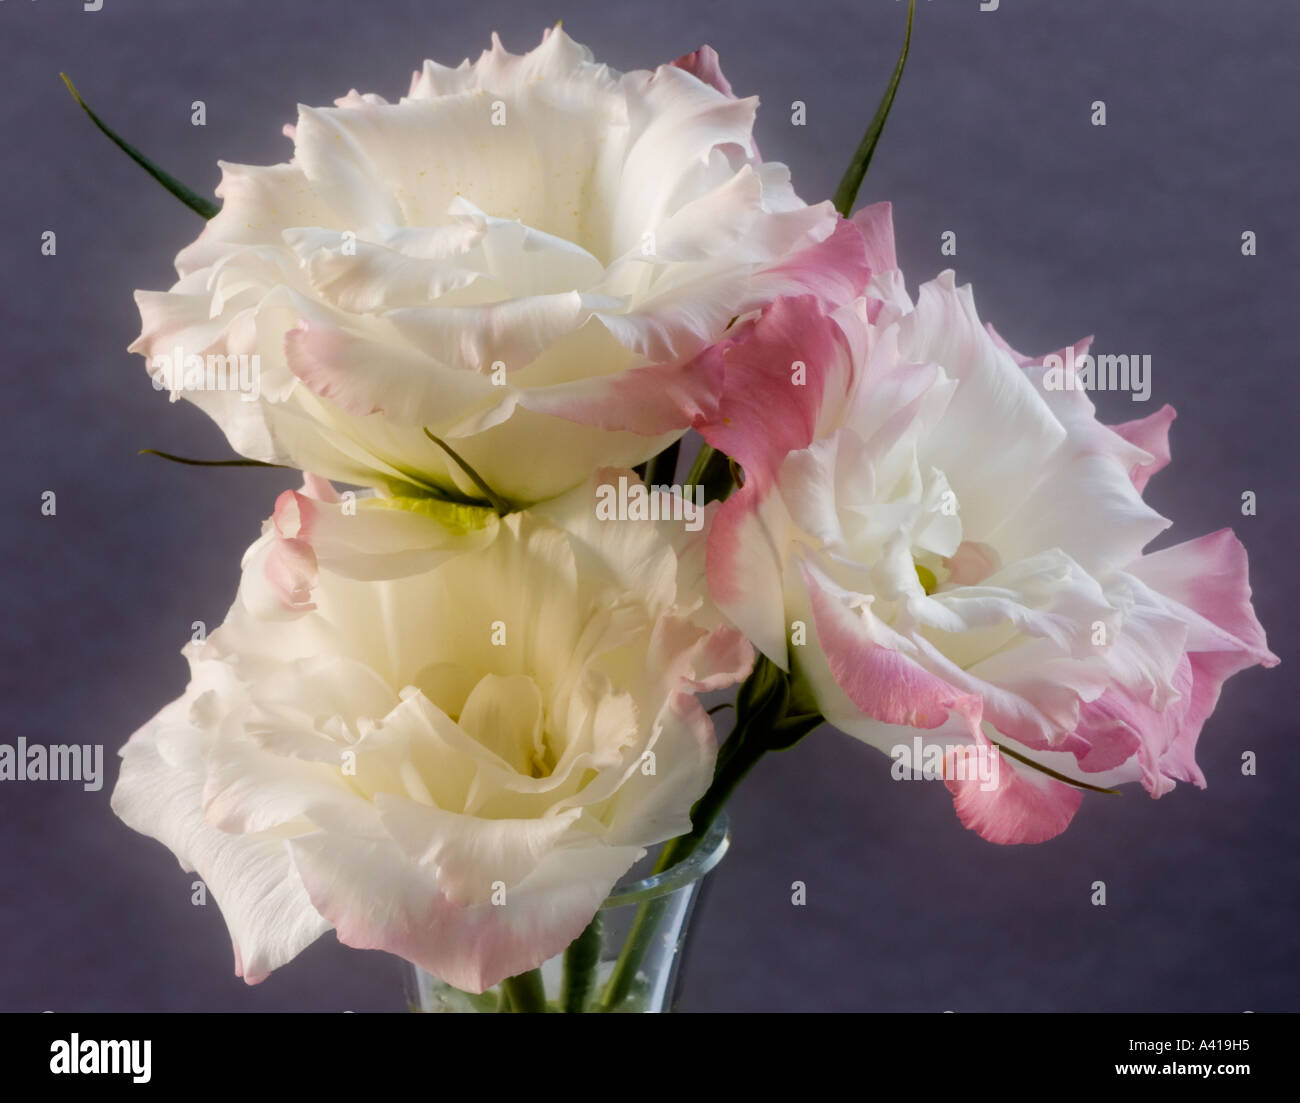 Three Lisianthus Flowers in a Glass Vase - Close-up - White Petals With Pink Edging - Stock Image